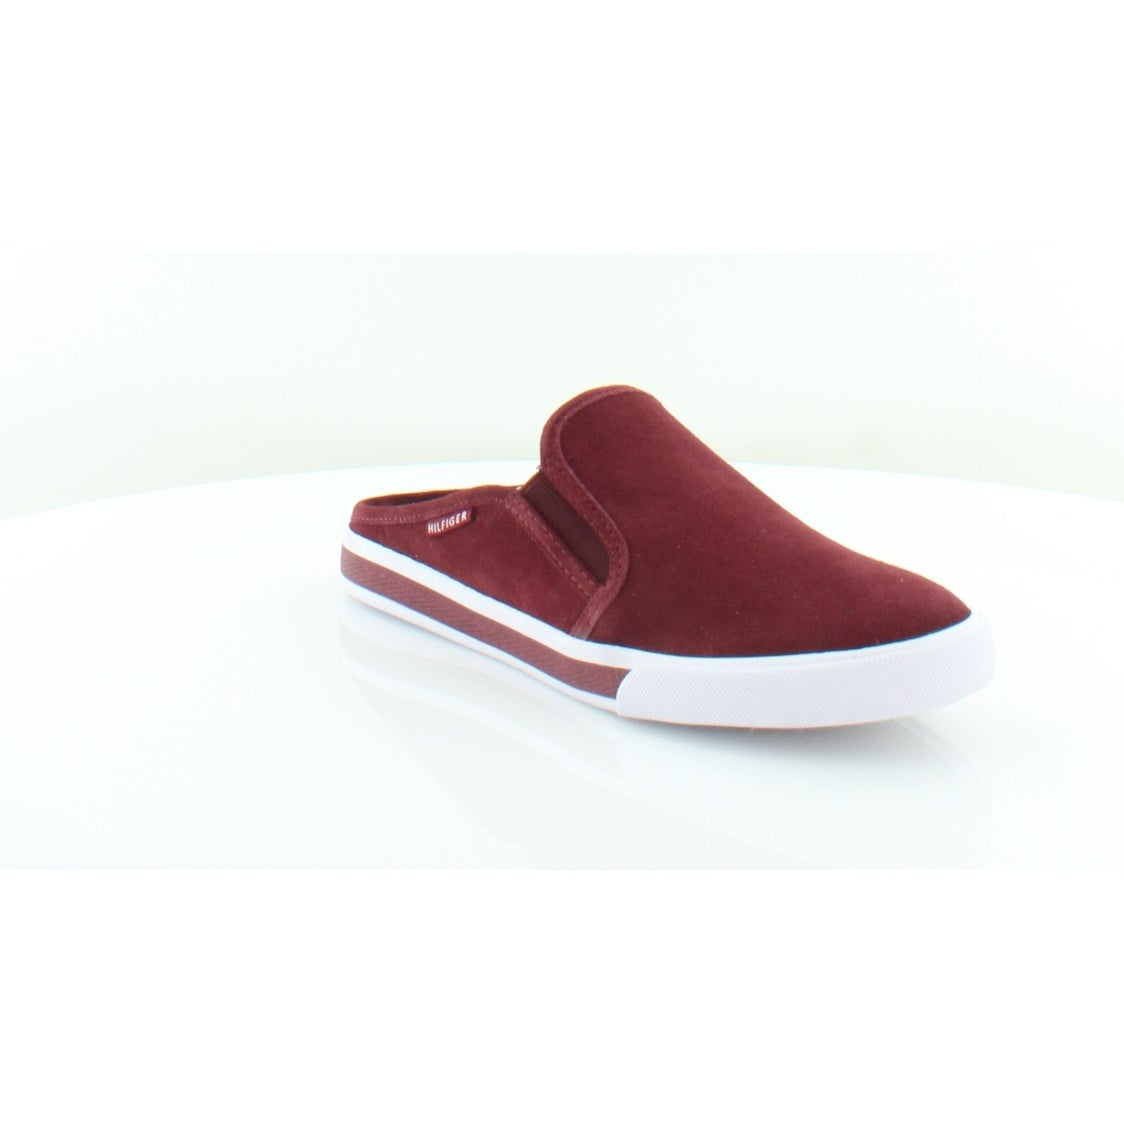 1adbdde5417ee1 New Products - Tommy Hilfiger Shoes